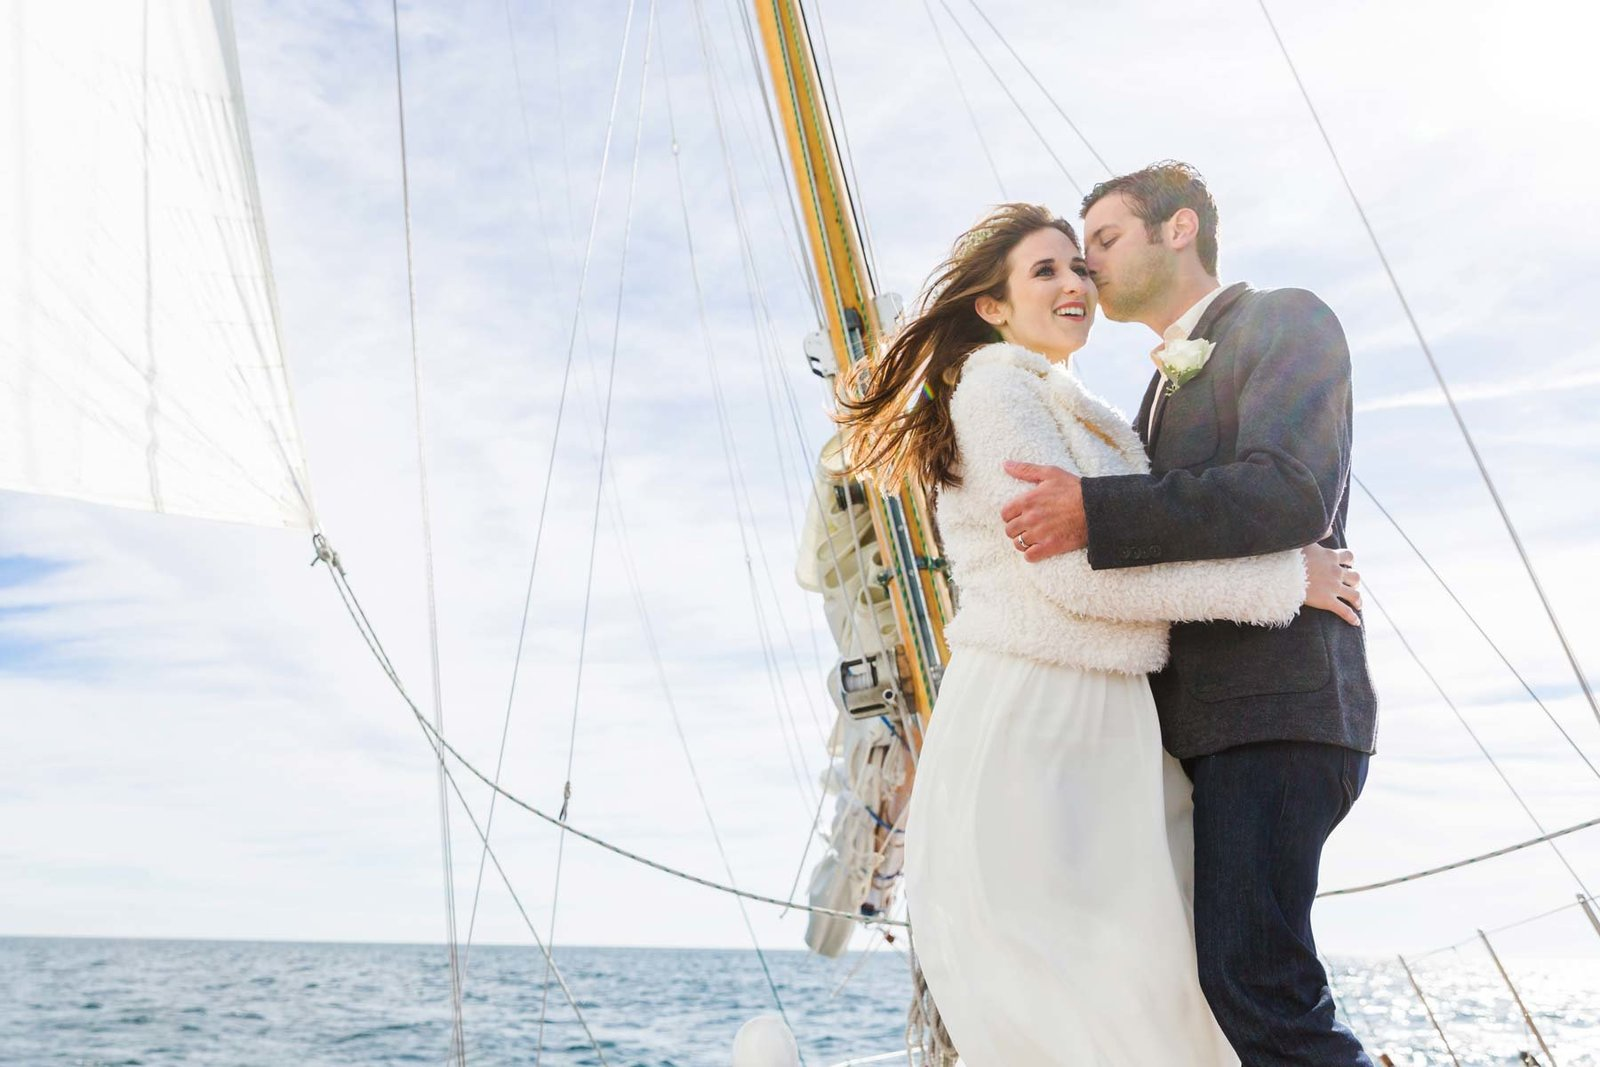 Ogunquit Maine elopement Photographers on Silver Linings Sailboat on the water Elope Bride Groom wind I am Sarah V Photography